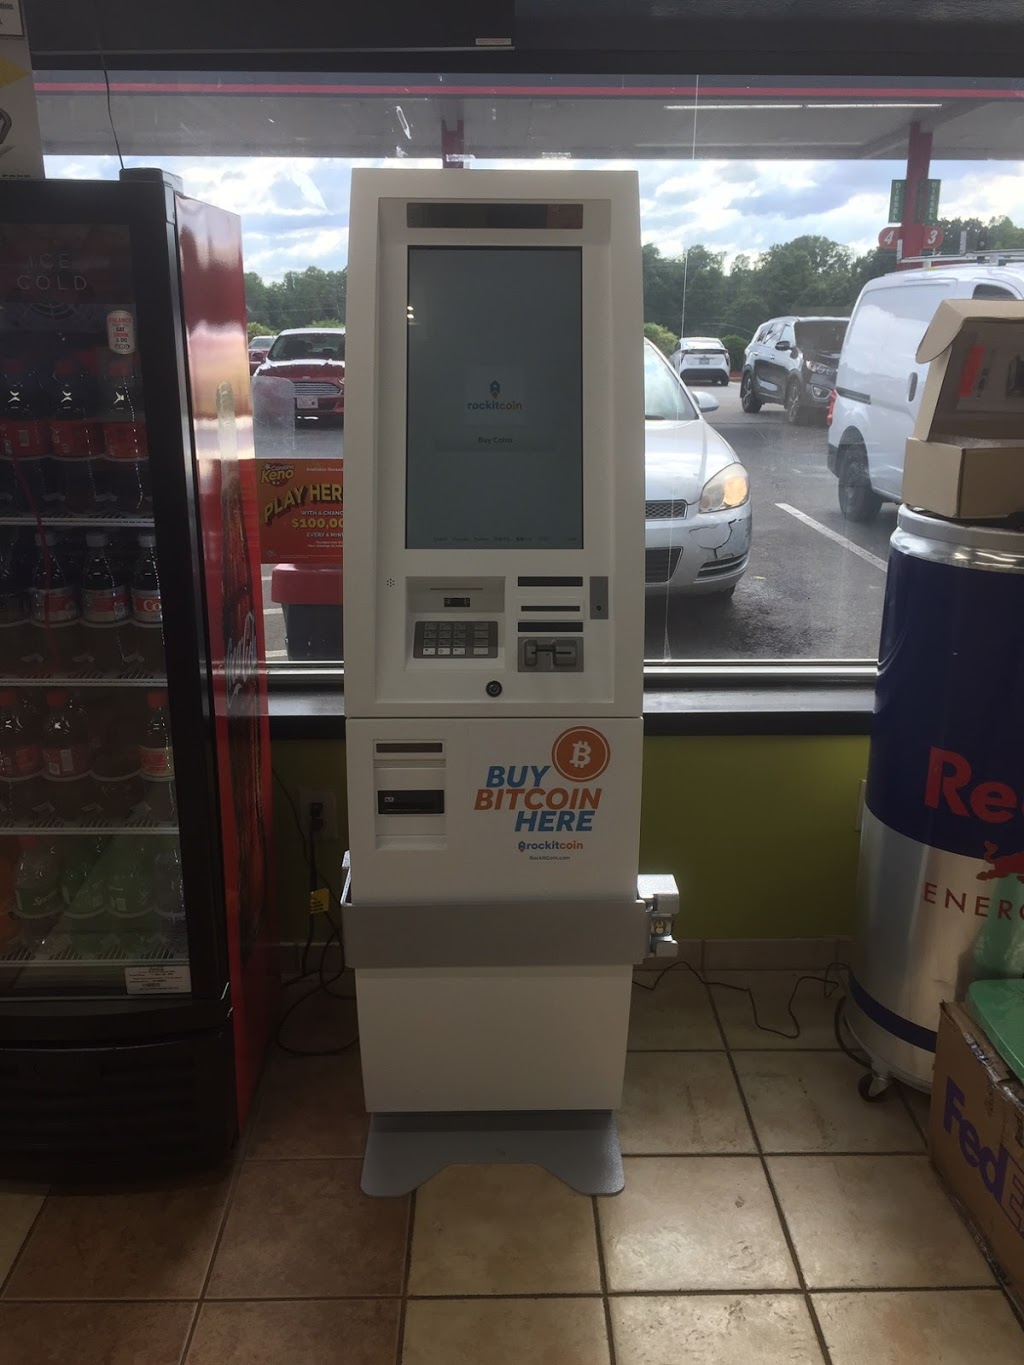 RockItCoin Bitcoin ATM - atm    Photo 3 of 3   Address: 2301 US-220, Stokesdale, NC 27357, USA   Phone: (888) 702-4826